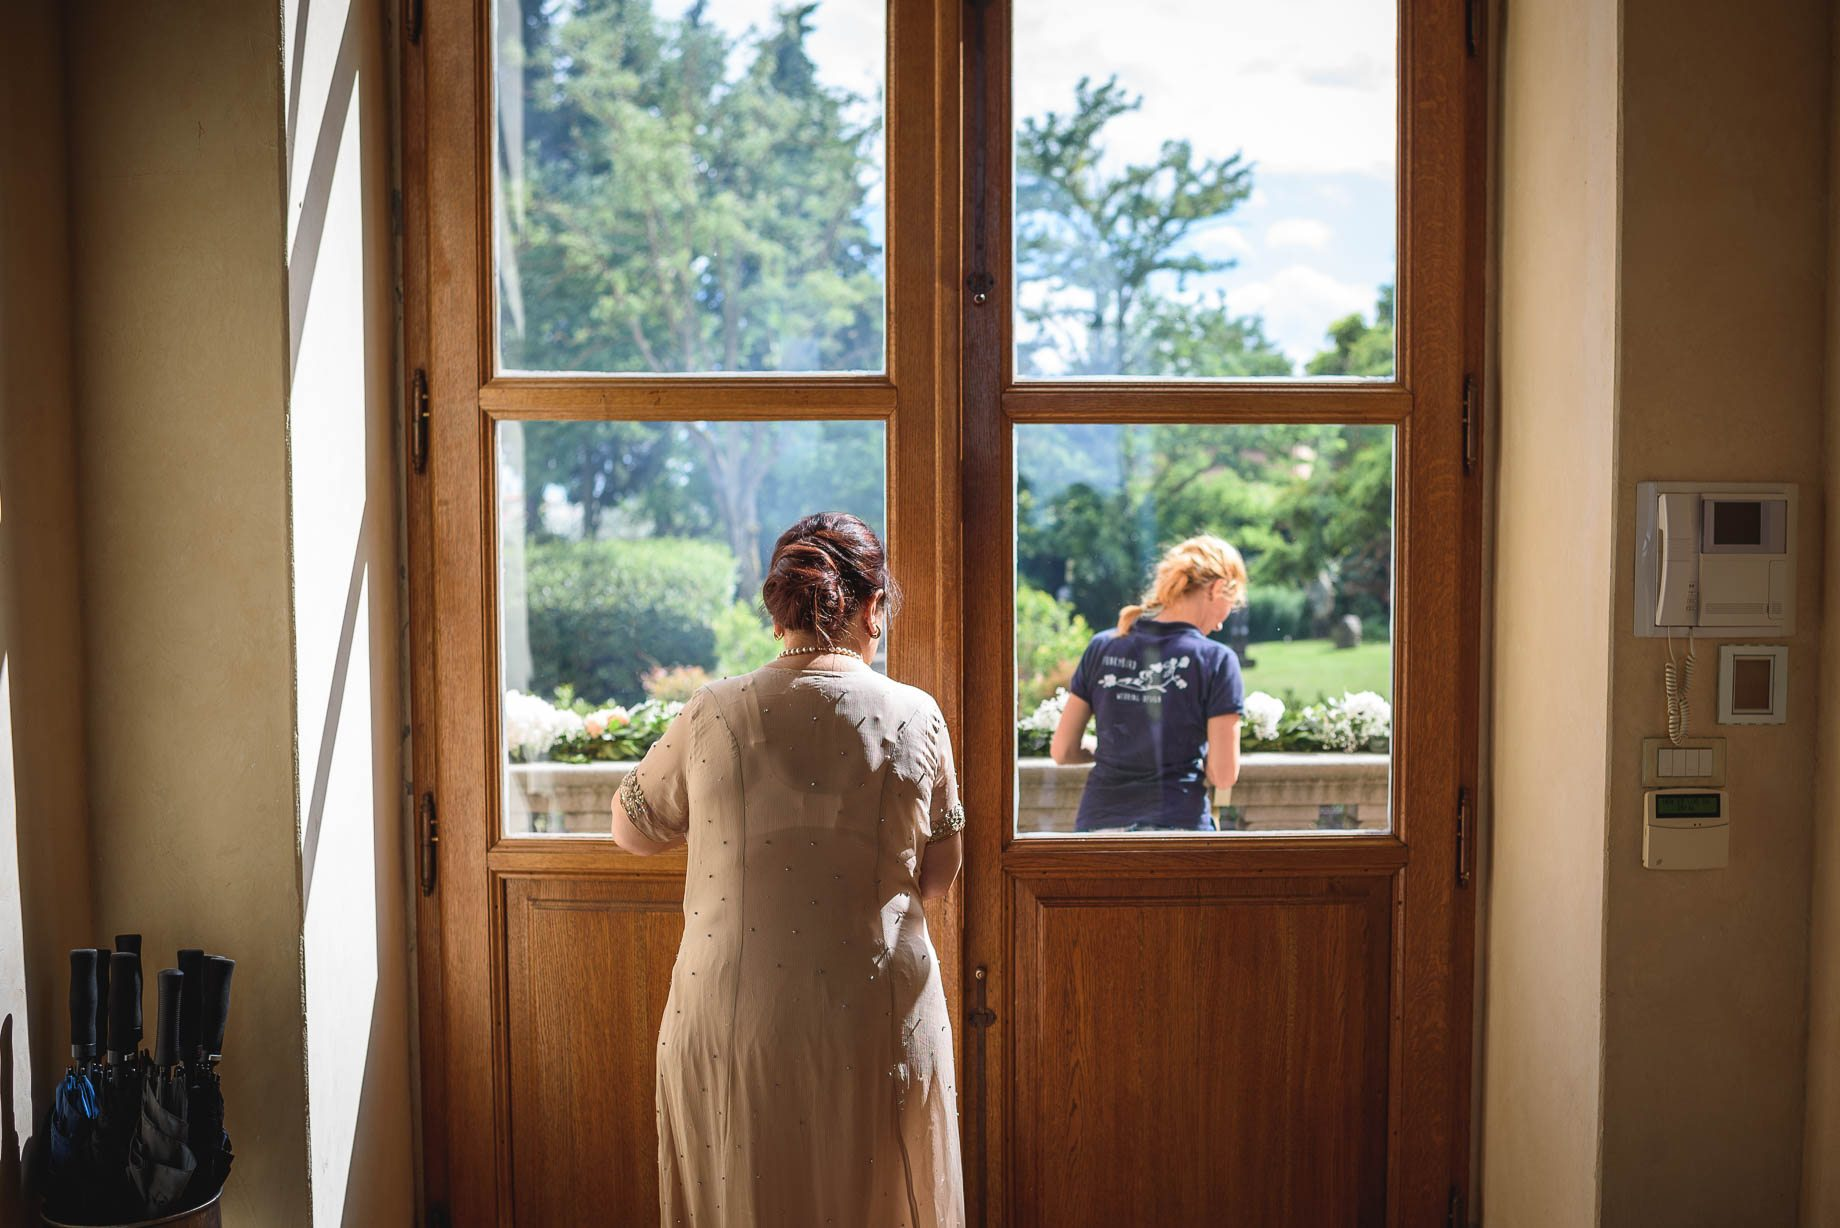 Tuscany wedding photography - Roisin and Moubin - Guy Collier Photography (72 of 251)